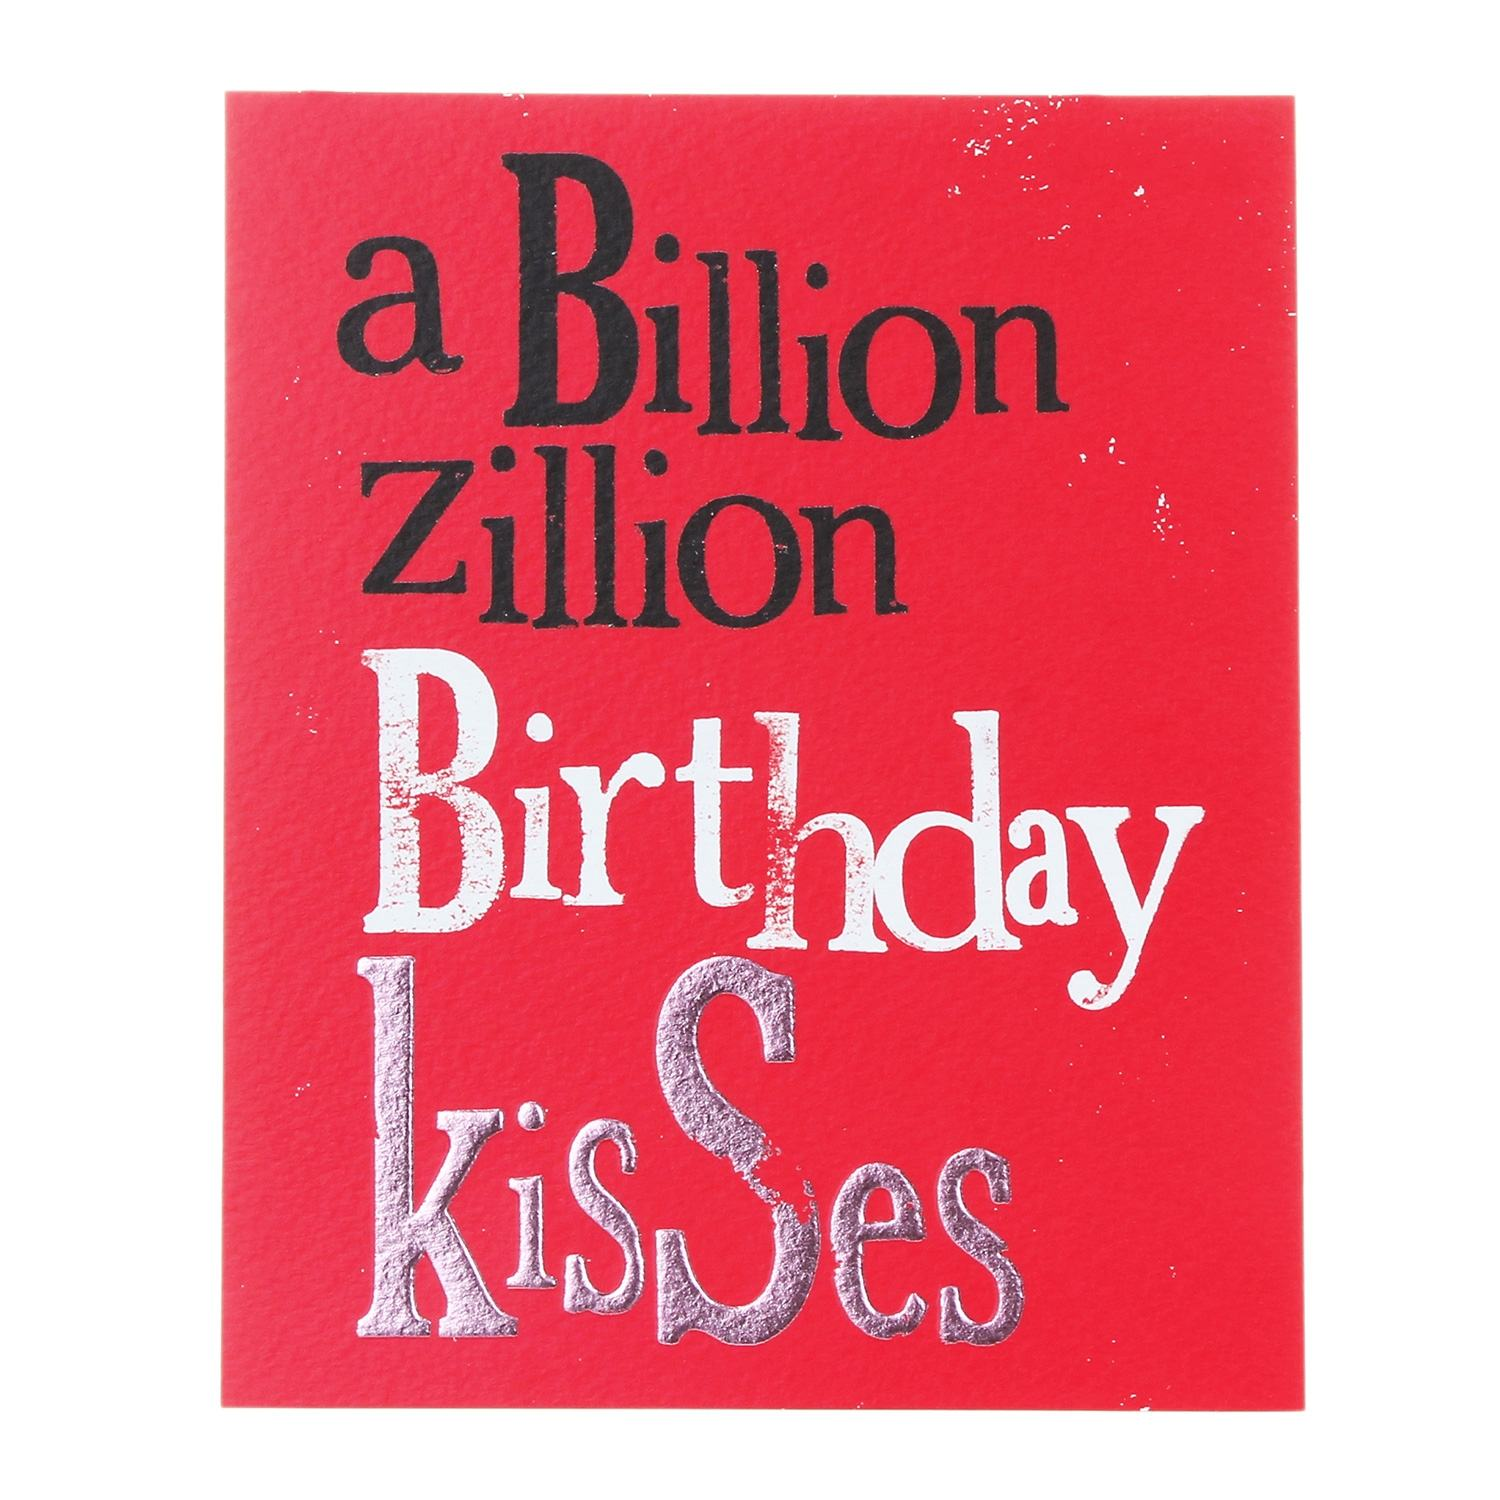 The Bright Side A Billion Zillion Birthday Kisses Greetings Card